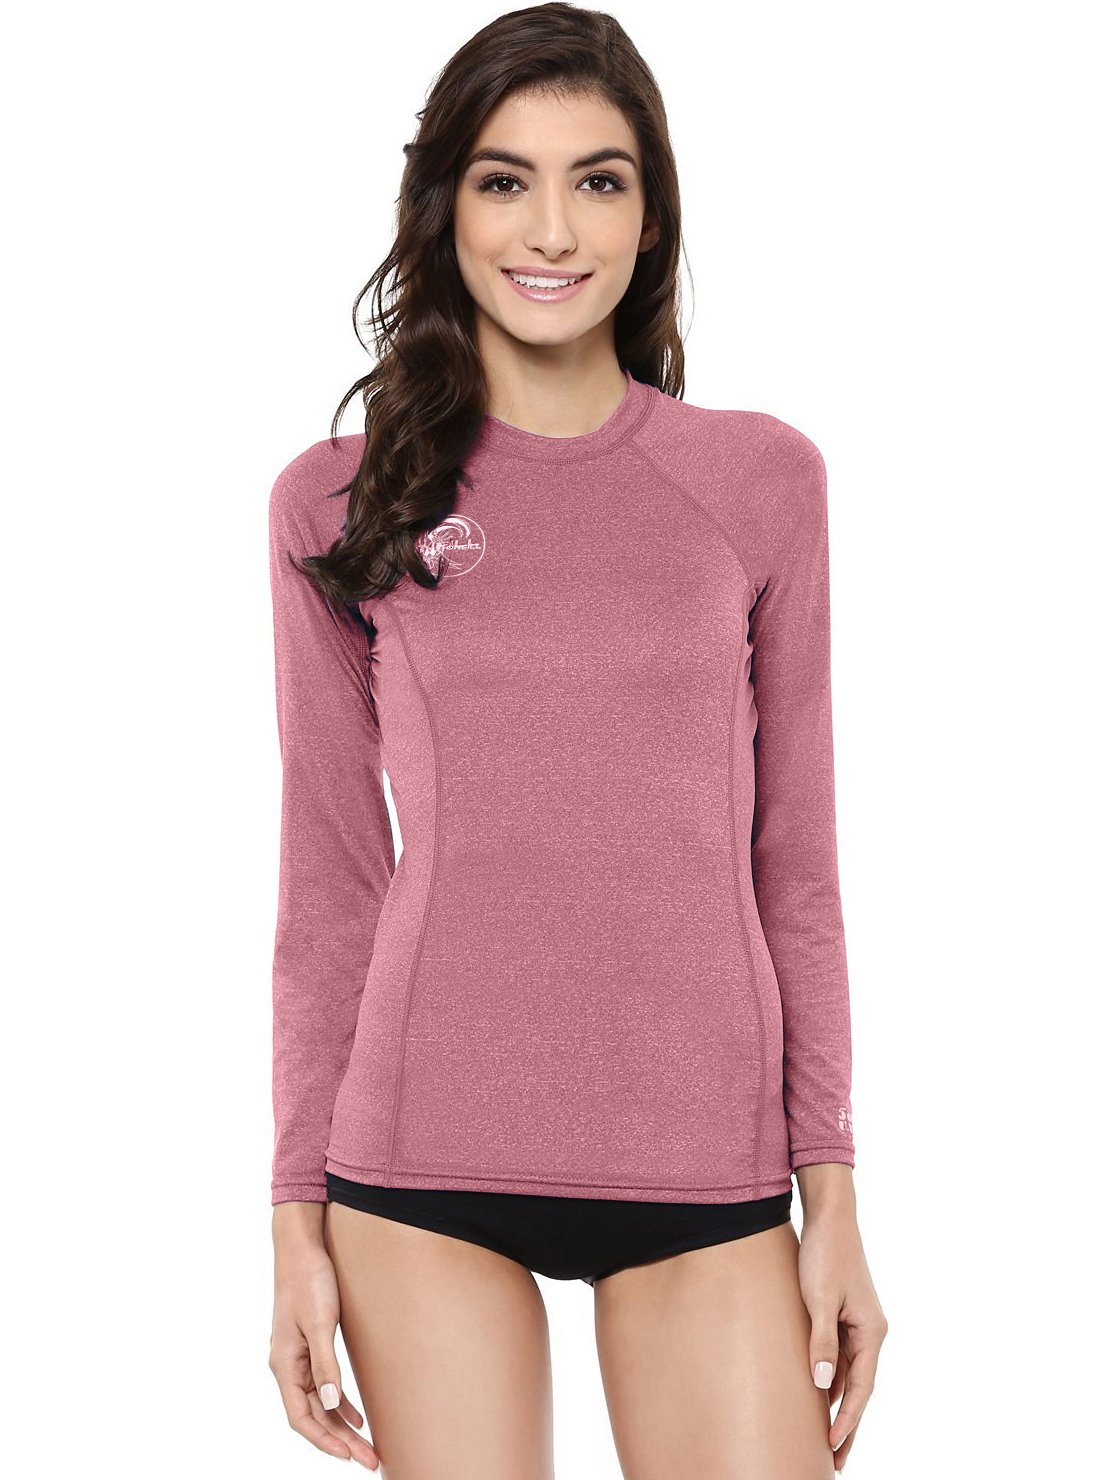 O'Neill Women's Hybrid UPF 50+ Long Sleeve Rash Guard, Mesa Rose, Medium by O'Neill Wetsuits